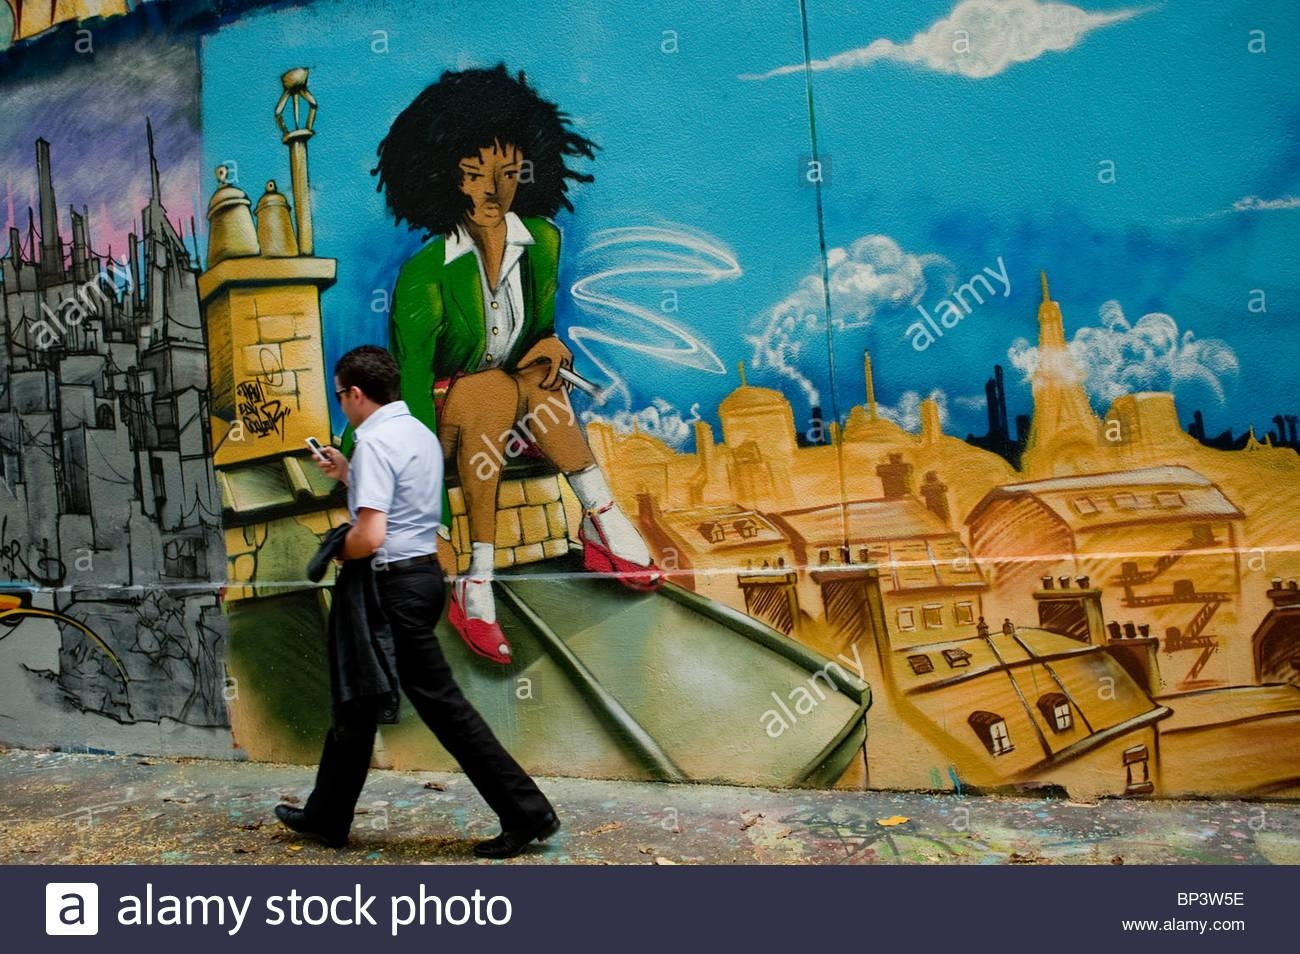 Paris, France, Street Scene, Man Walking, Painted Wall With Spray With Regard To Street Scene Wall Art (View 14 of 20)